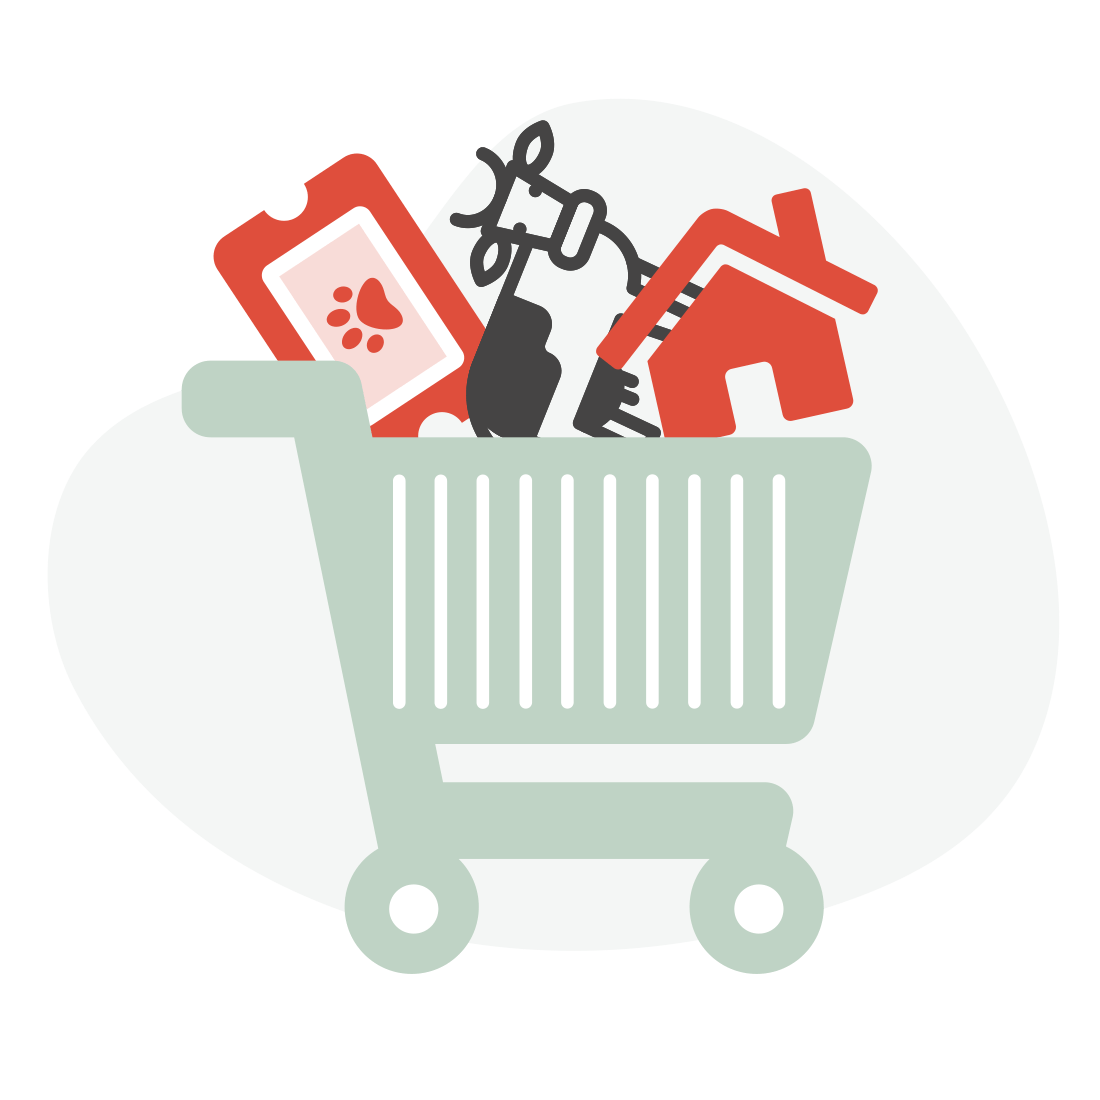 Shopping cart full of icons representing the UK's online shopping habits